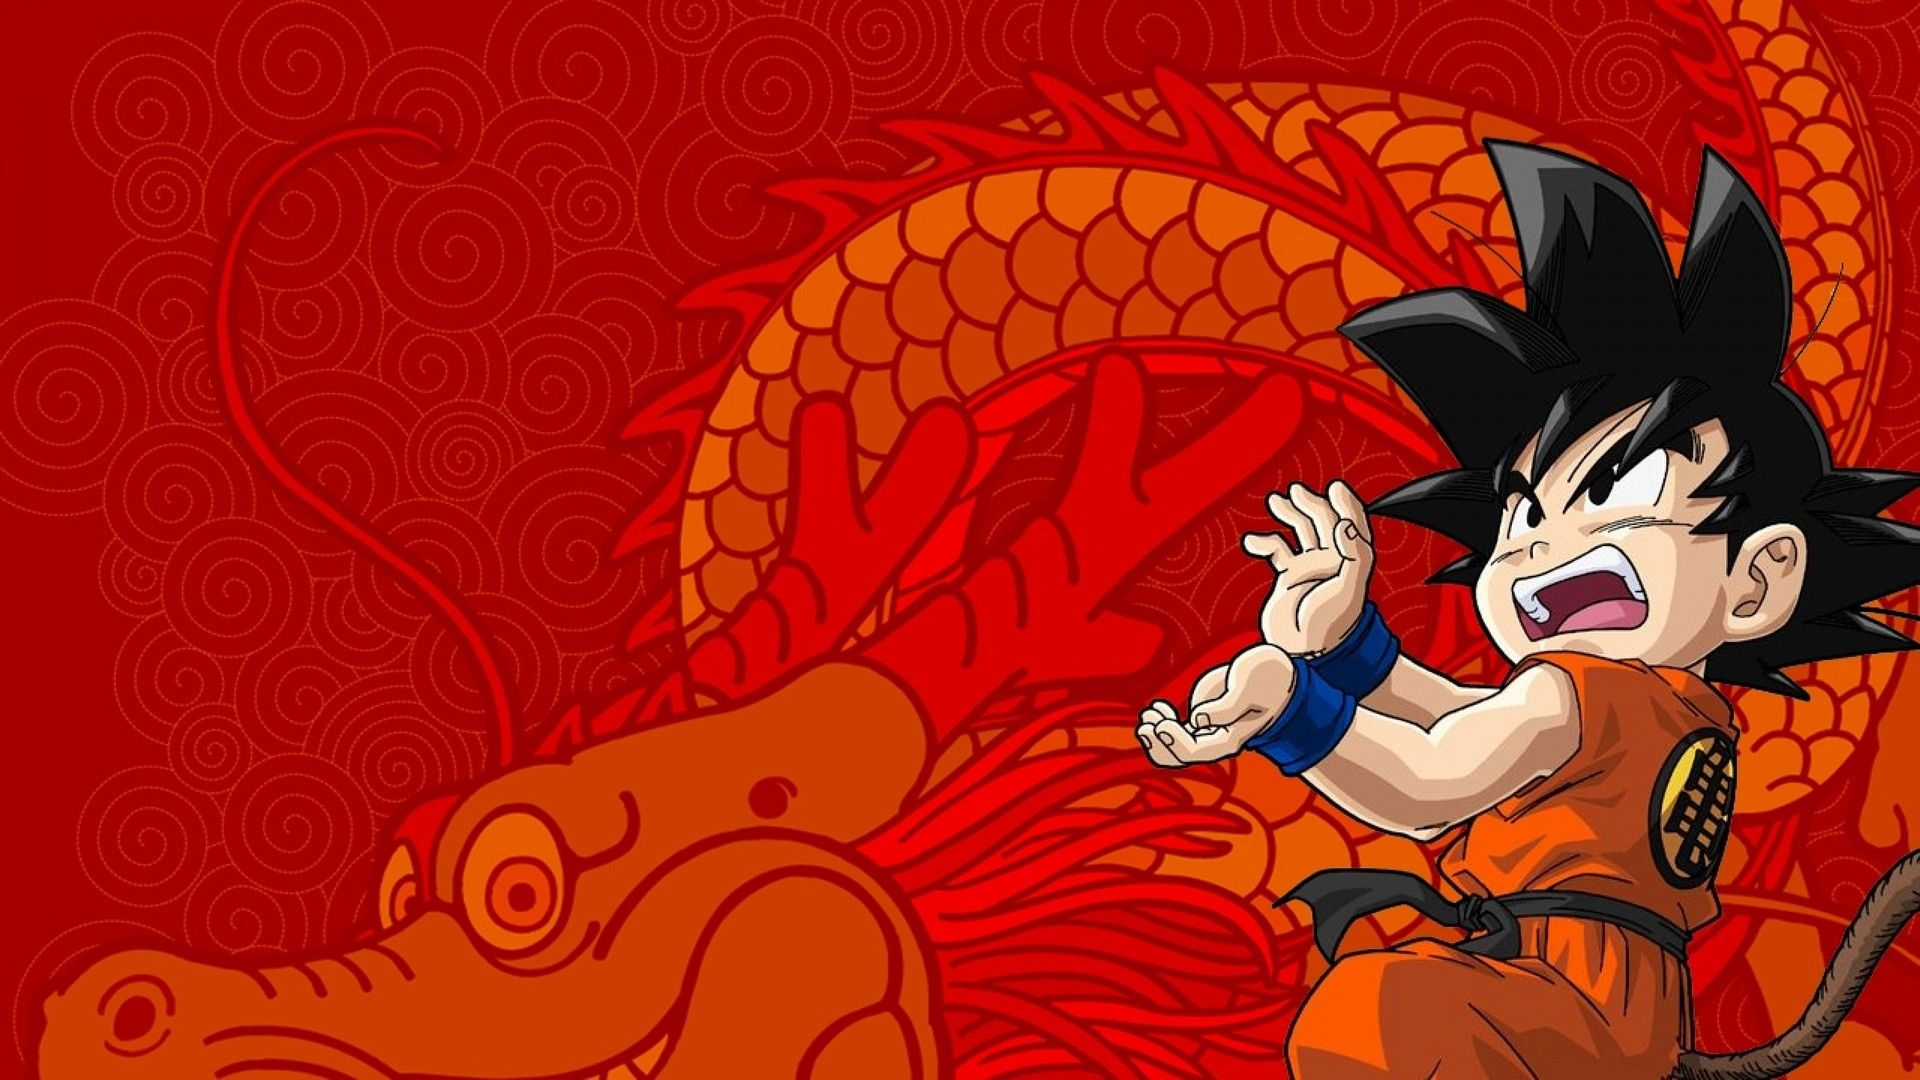 Wallpapers Kid Goku Con Imagenes Dragones Mosaicos Abstracto